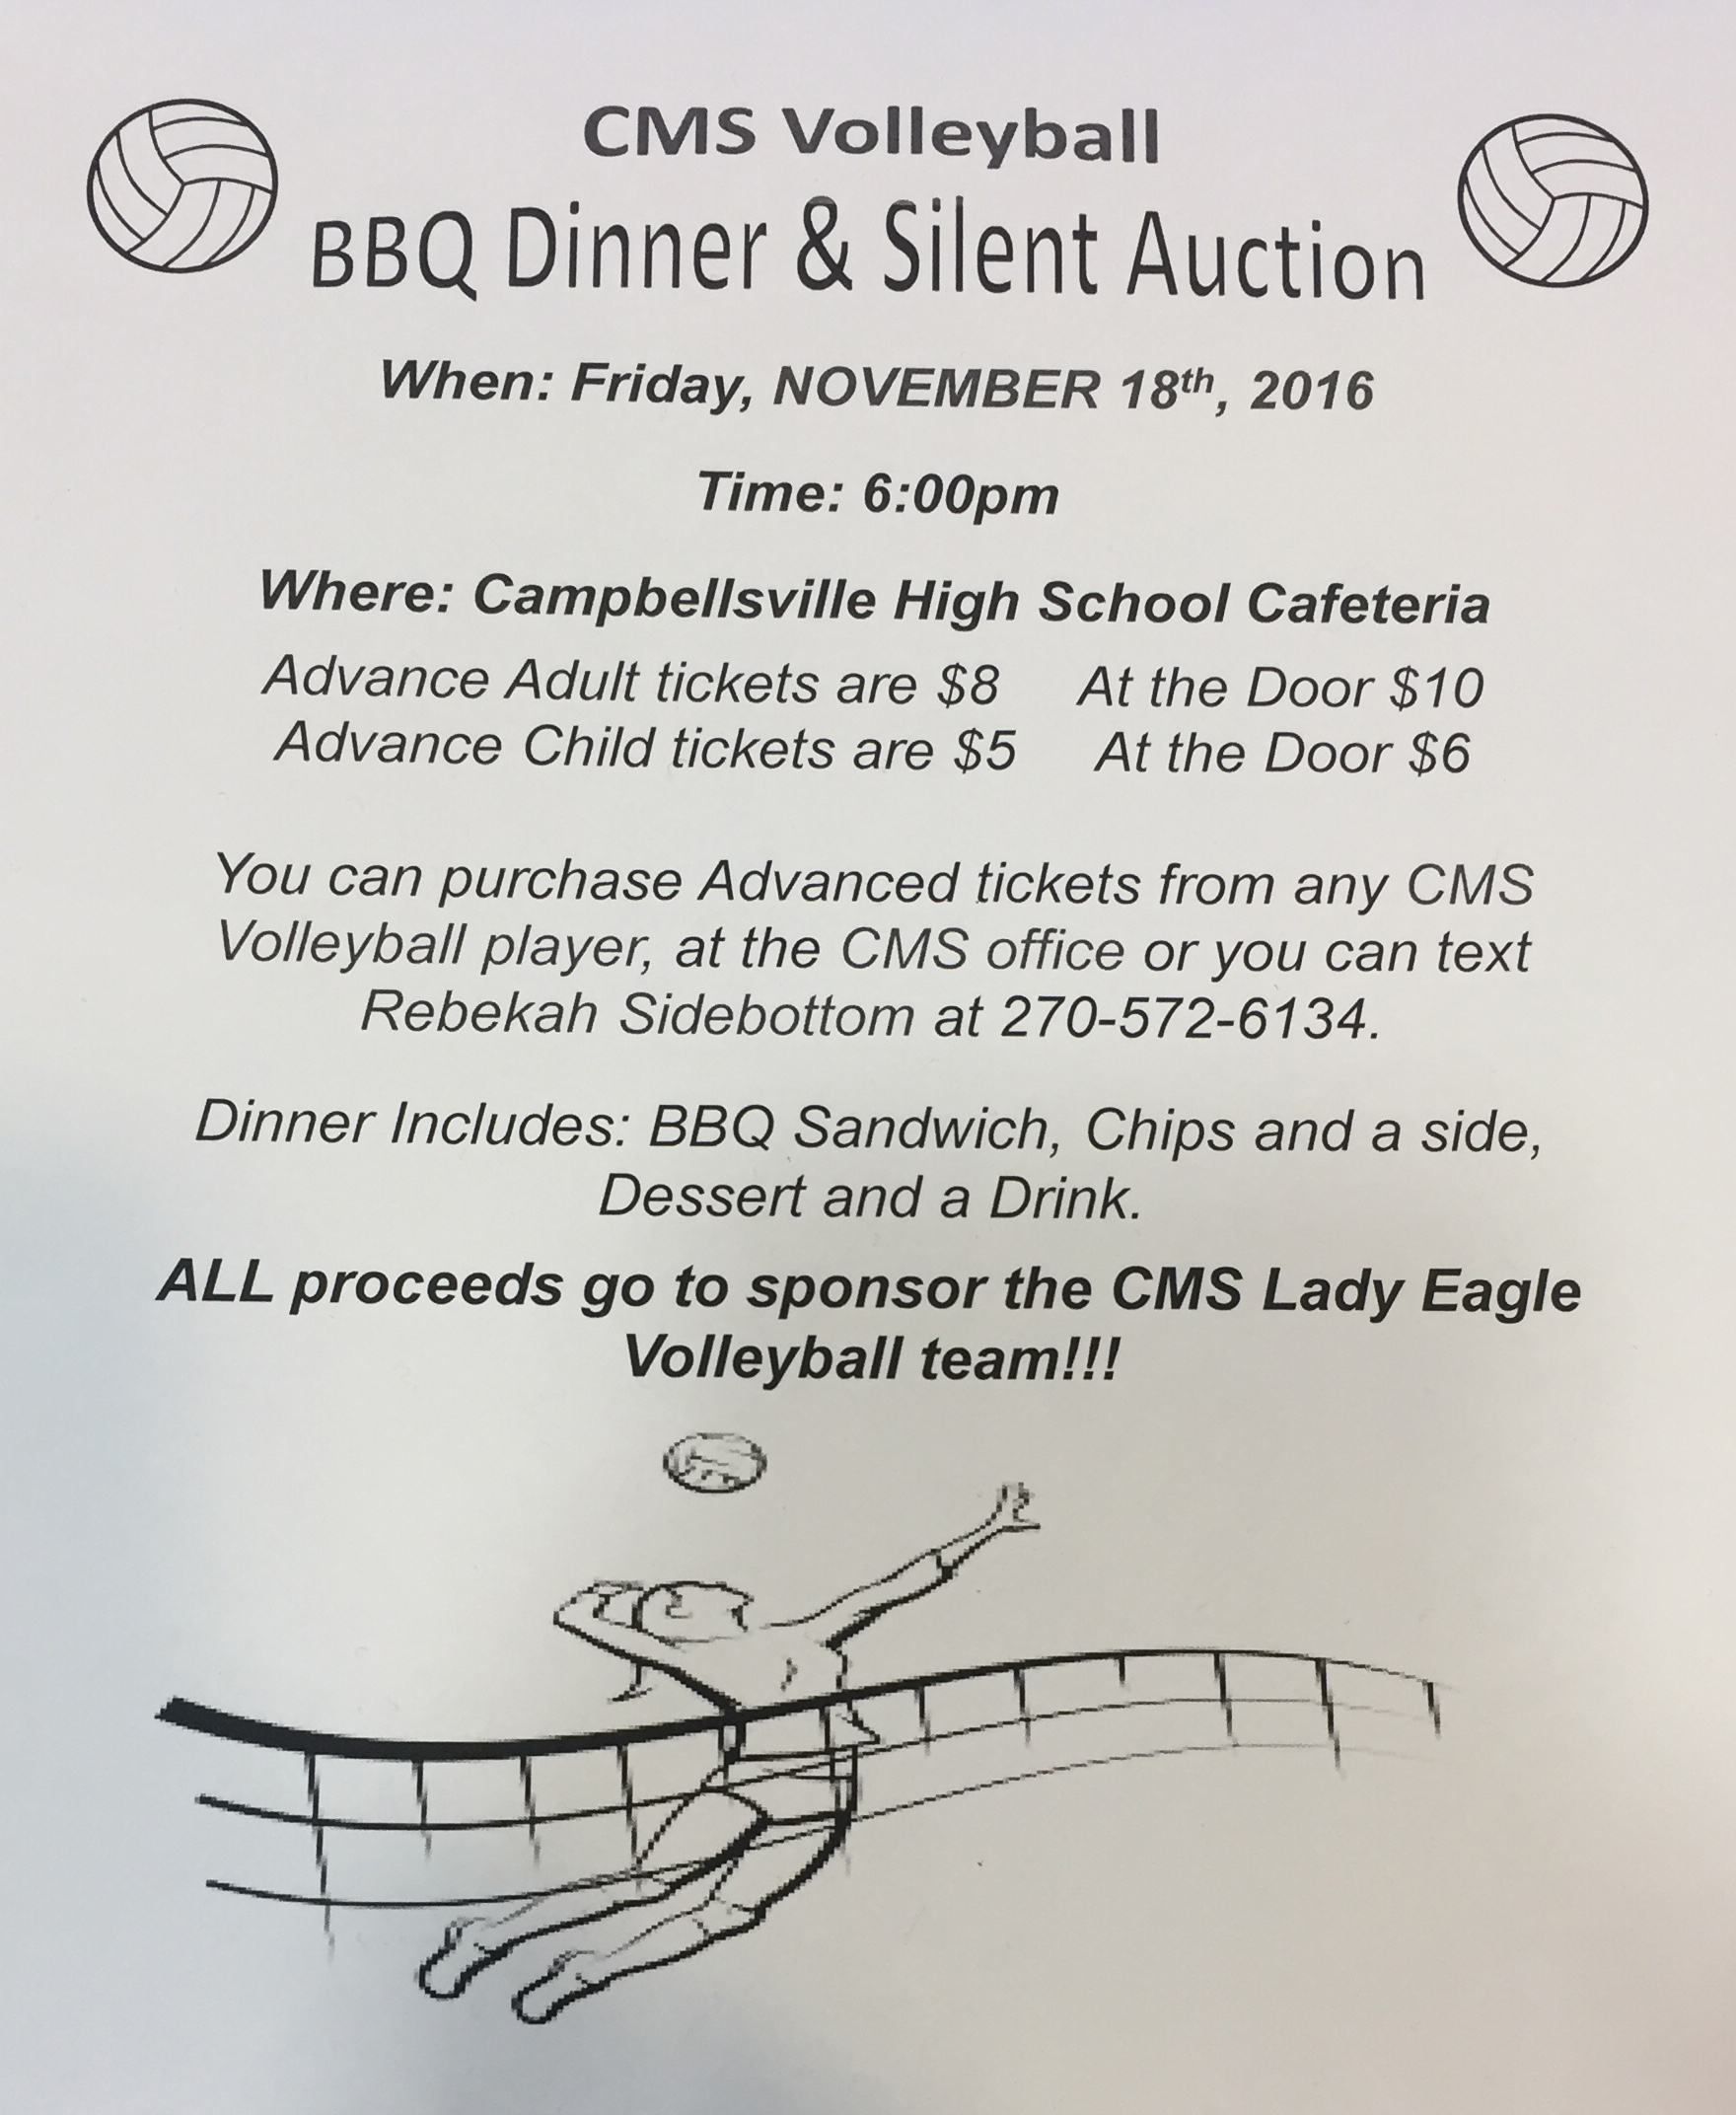 Campbellsville Middle School volleyball team will host a barbecue dinner and silent auction fundraiser on Friday, Nov. 18, at 6 p.m.